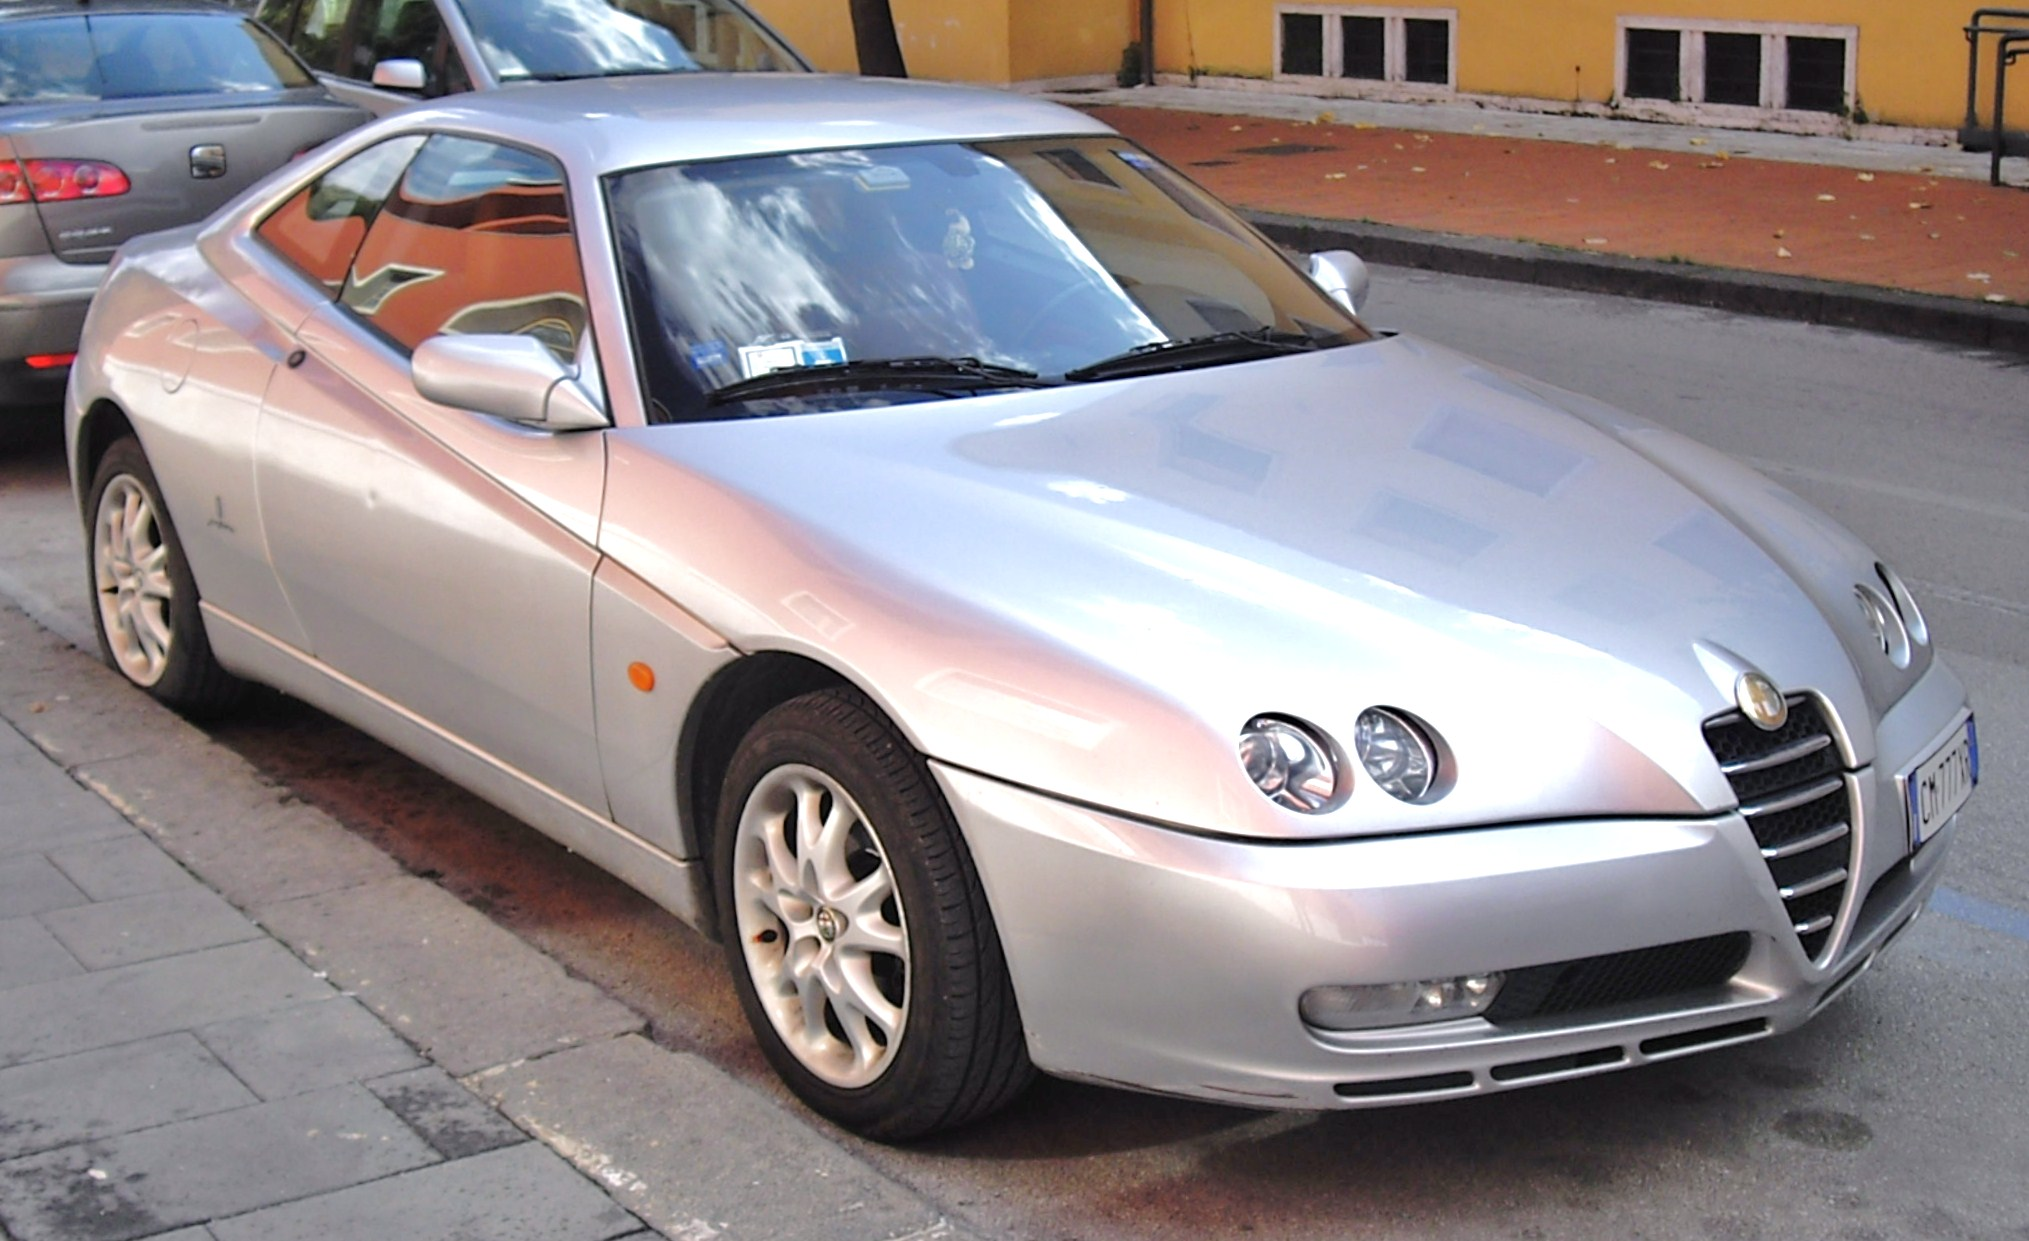 https://upload.wikimedia.org/wikipedia/commons/c/ce/Alfa_Romeo_GTV_facelift_front.JPG